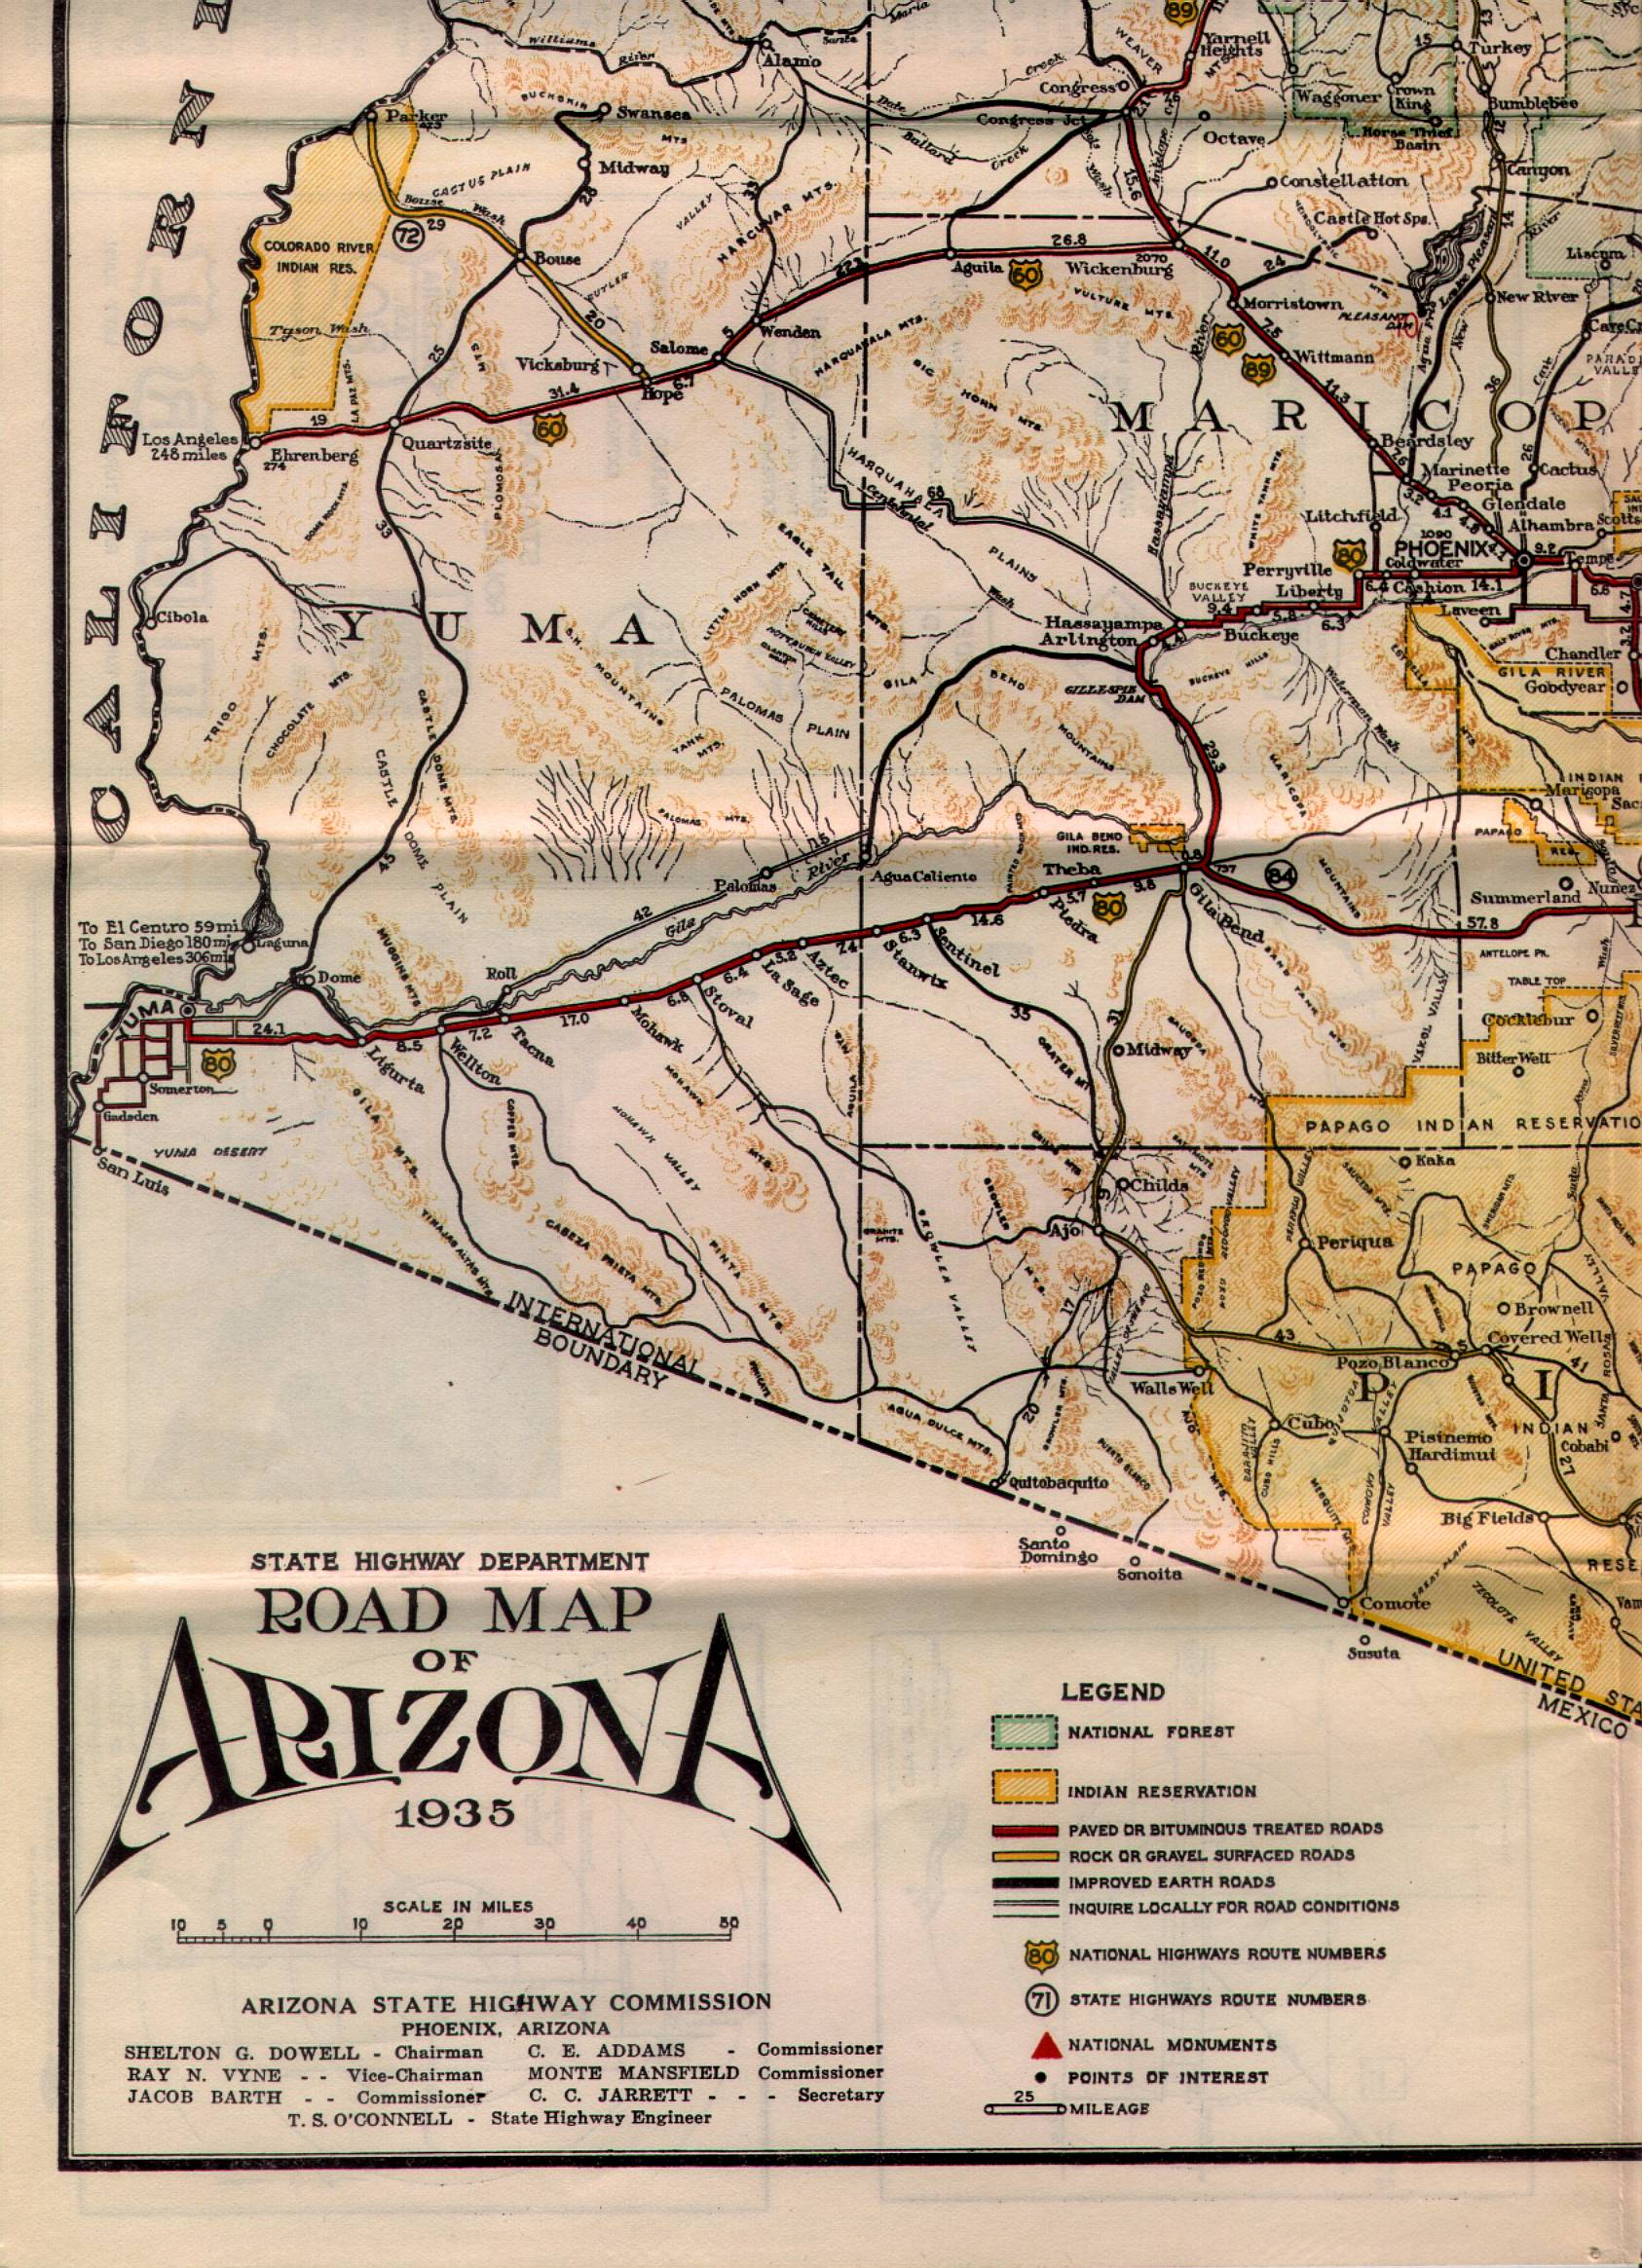 Maps - Road map of arizona